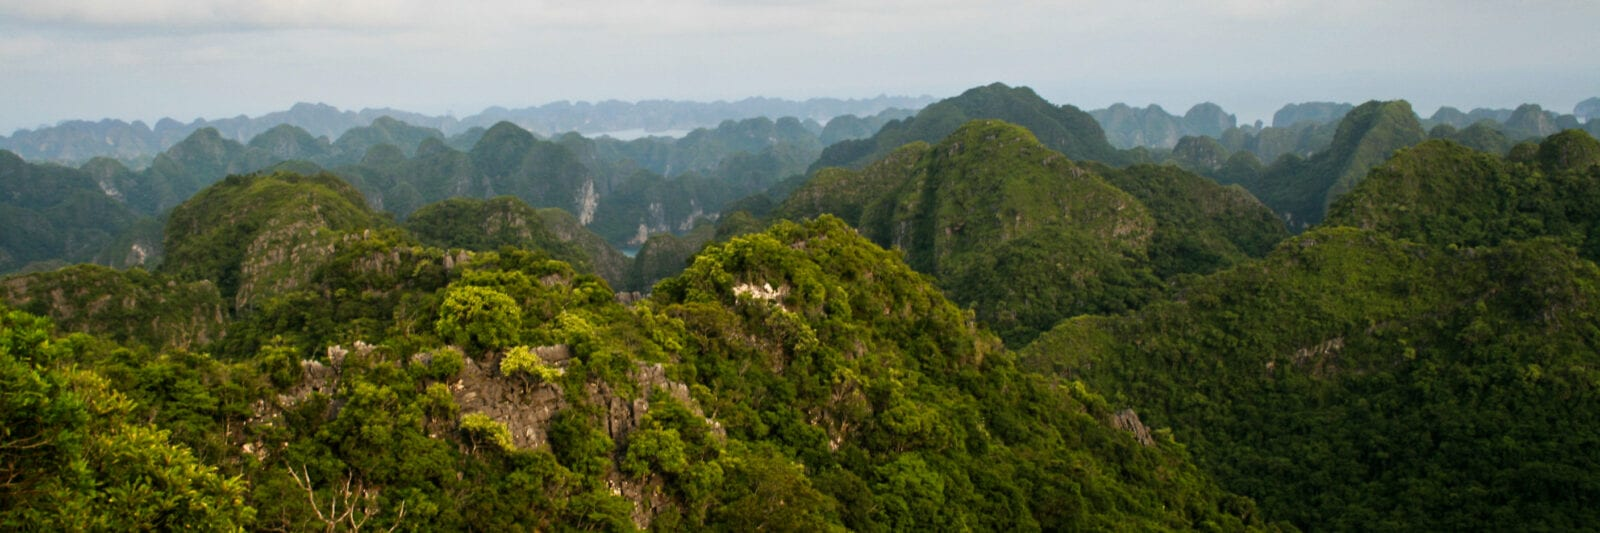 Image of lush green mountains in Tam Dao National Park in Vietnam